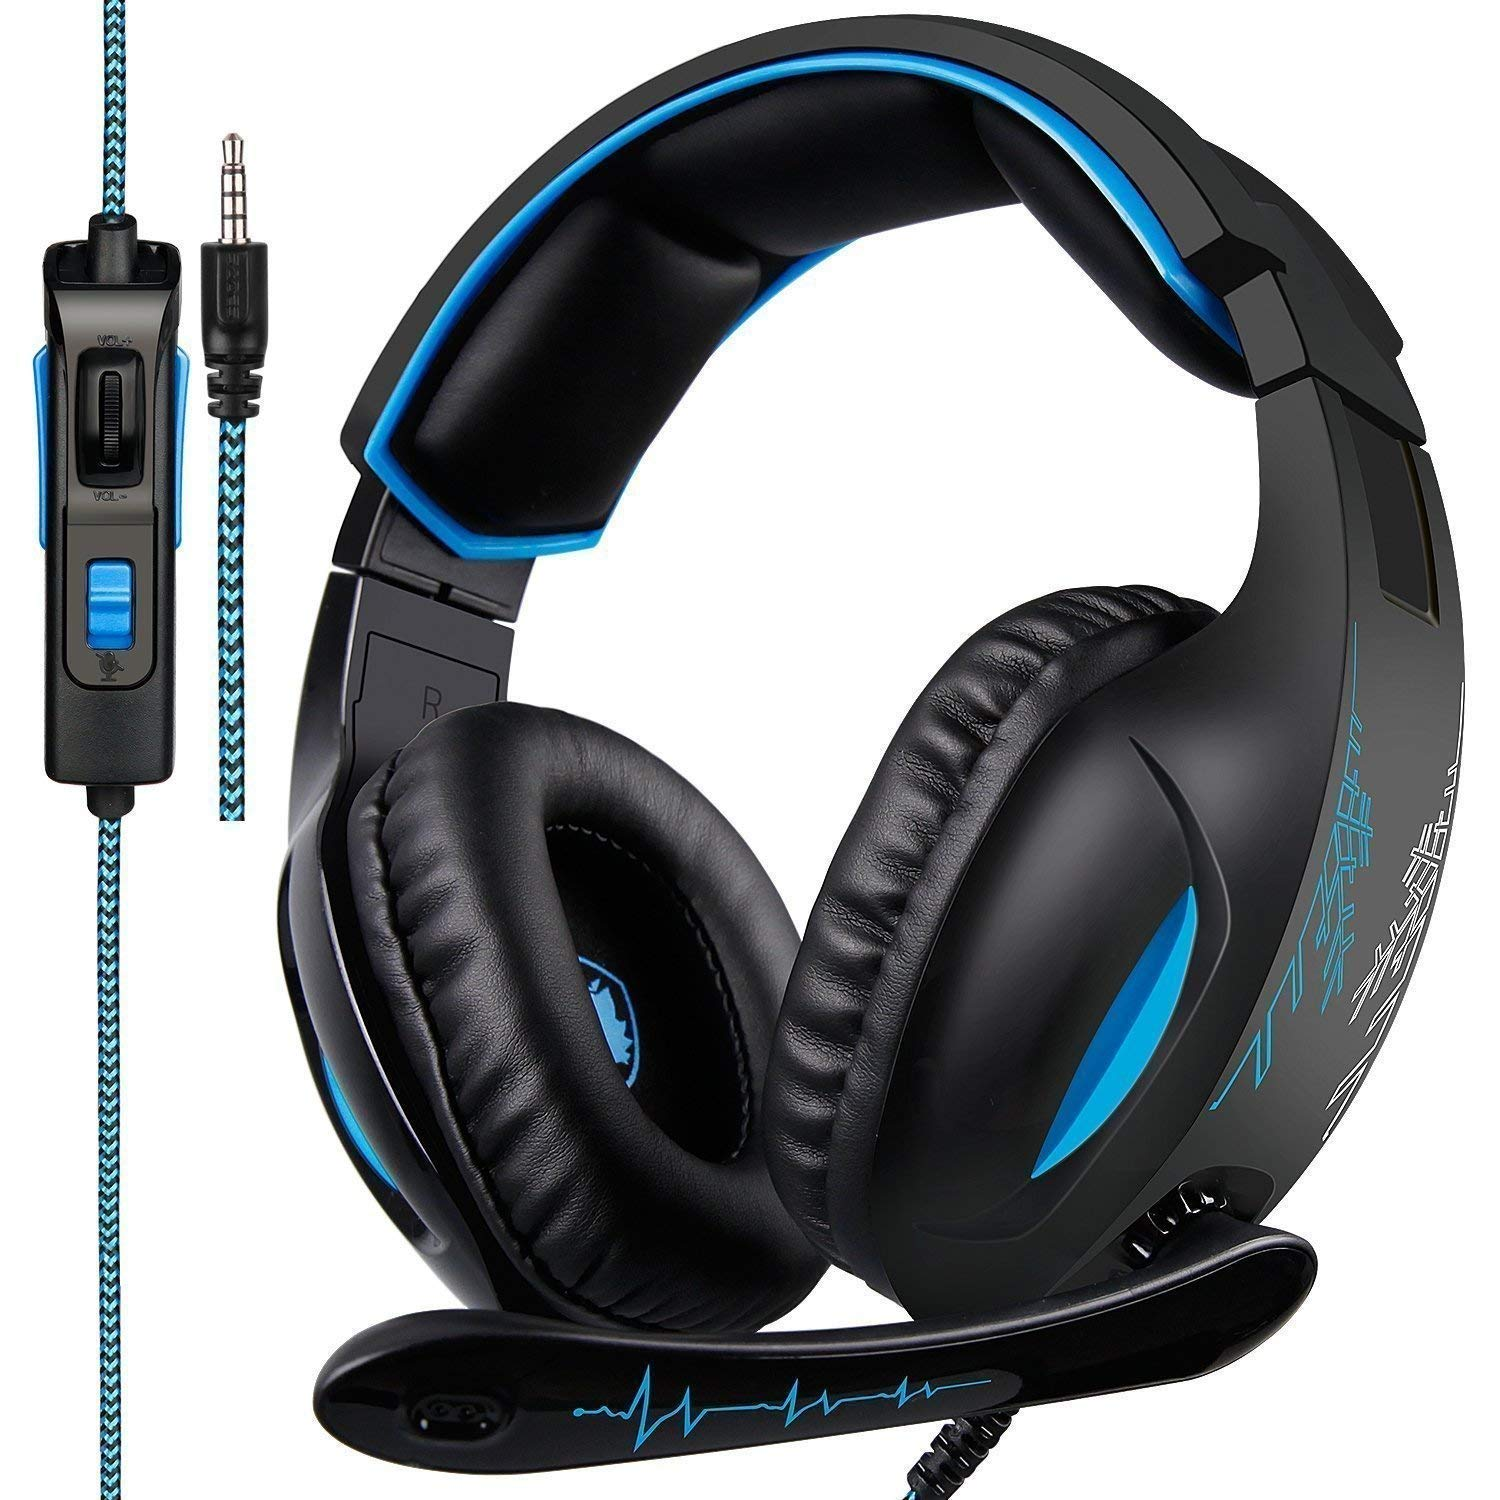 SADES SA816 Stereo Gaming Headset for Xbox One PC PS4 Over-Ear Headphones with Noise Canceling Mic Soft Ear Cushion 3.5mm Jack Plug Cable for Mac Laptop Tablet Smartphone